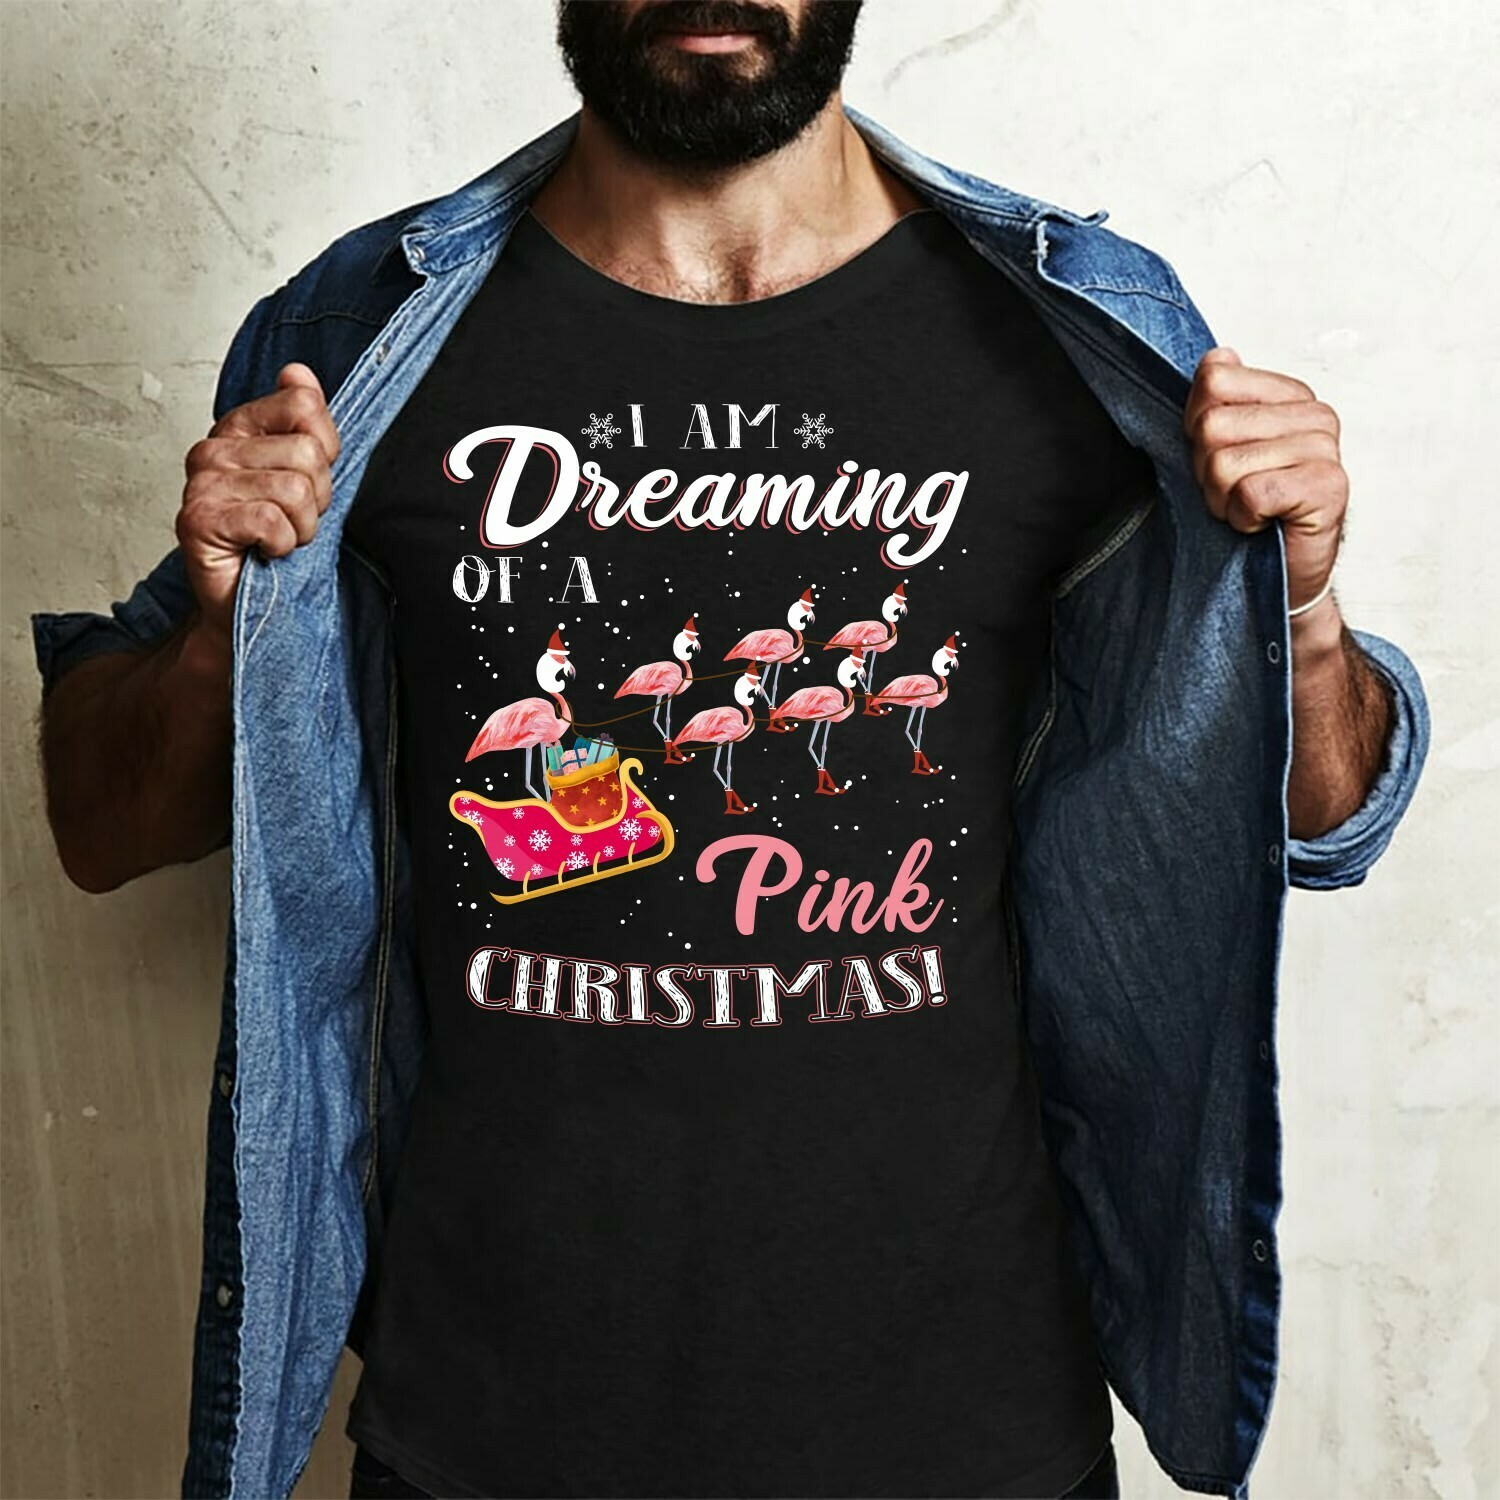 Flamingo Satan I Am Dreaming Of A Pink Christmas Gifts For Lovers Christmas Noel Family Vacation Team Party T-Shirt Long Sleeve Sweatshirt Hoodie Jolly Family Gifts